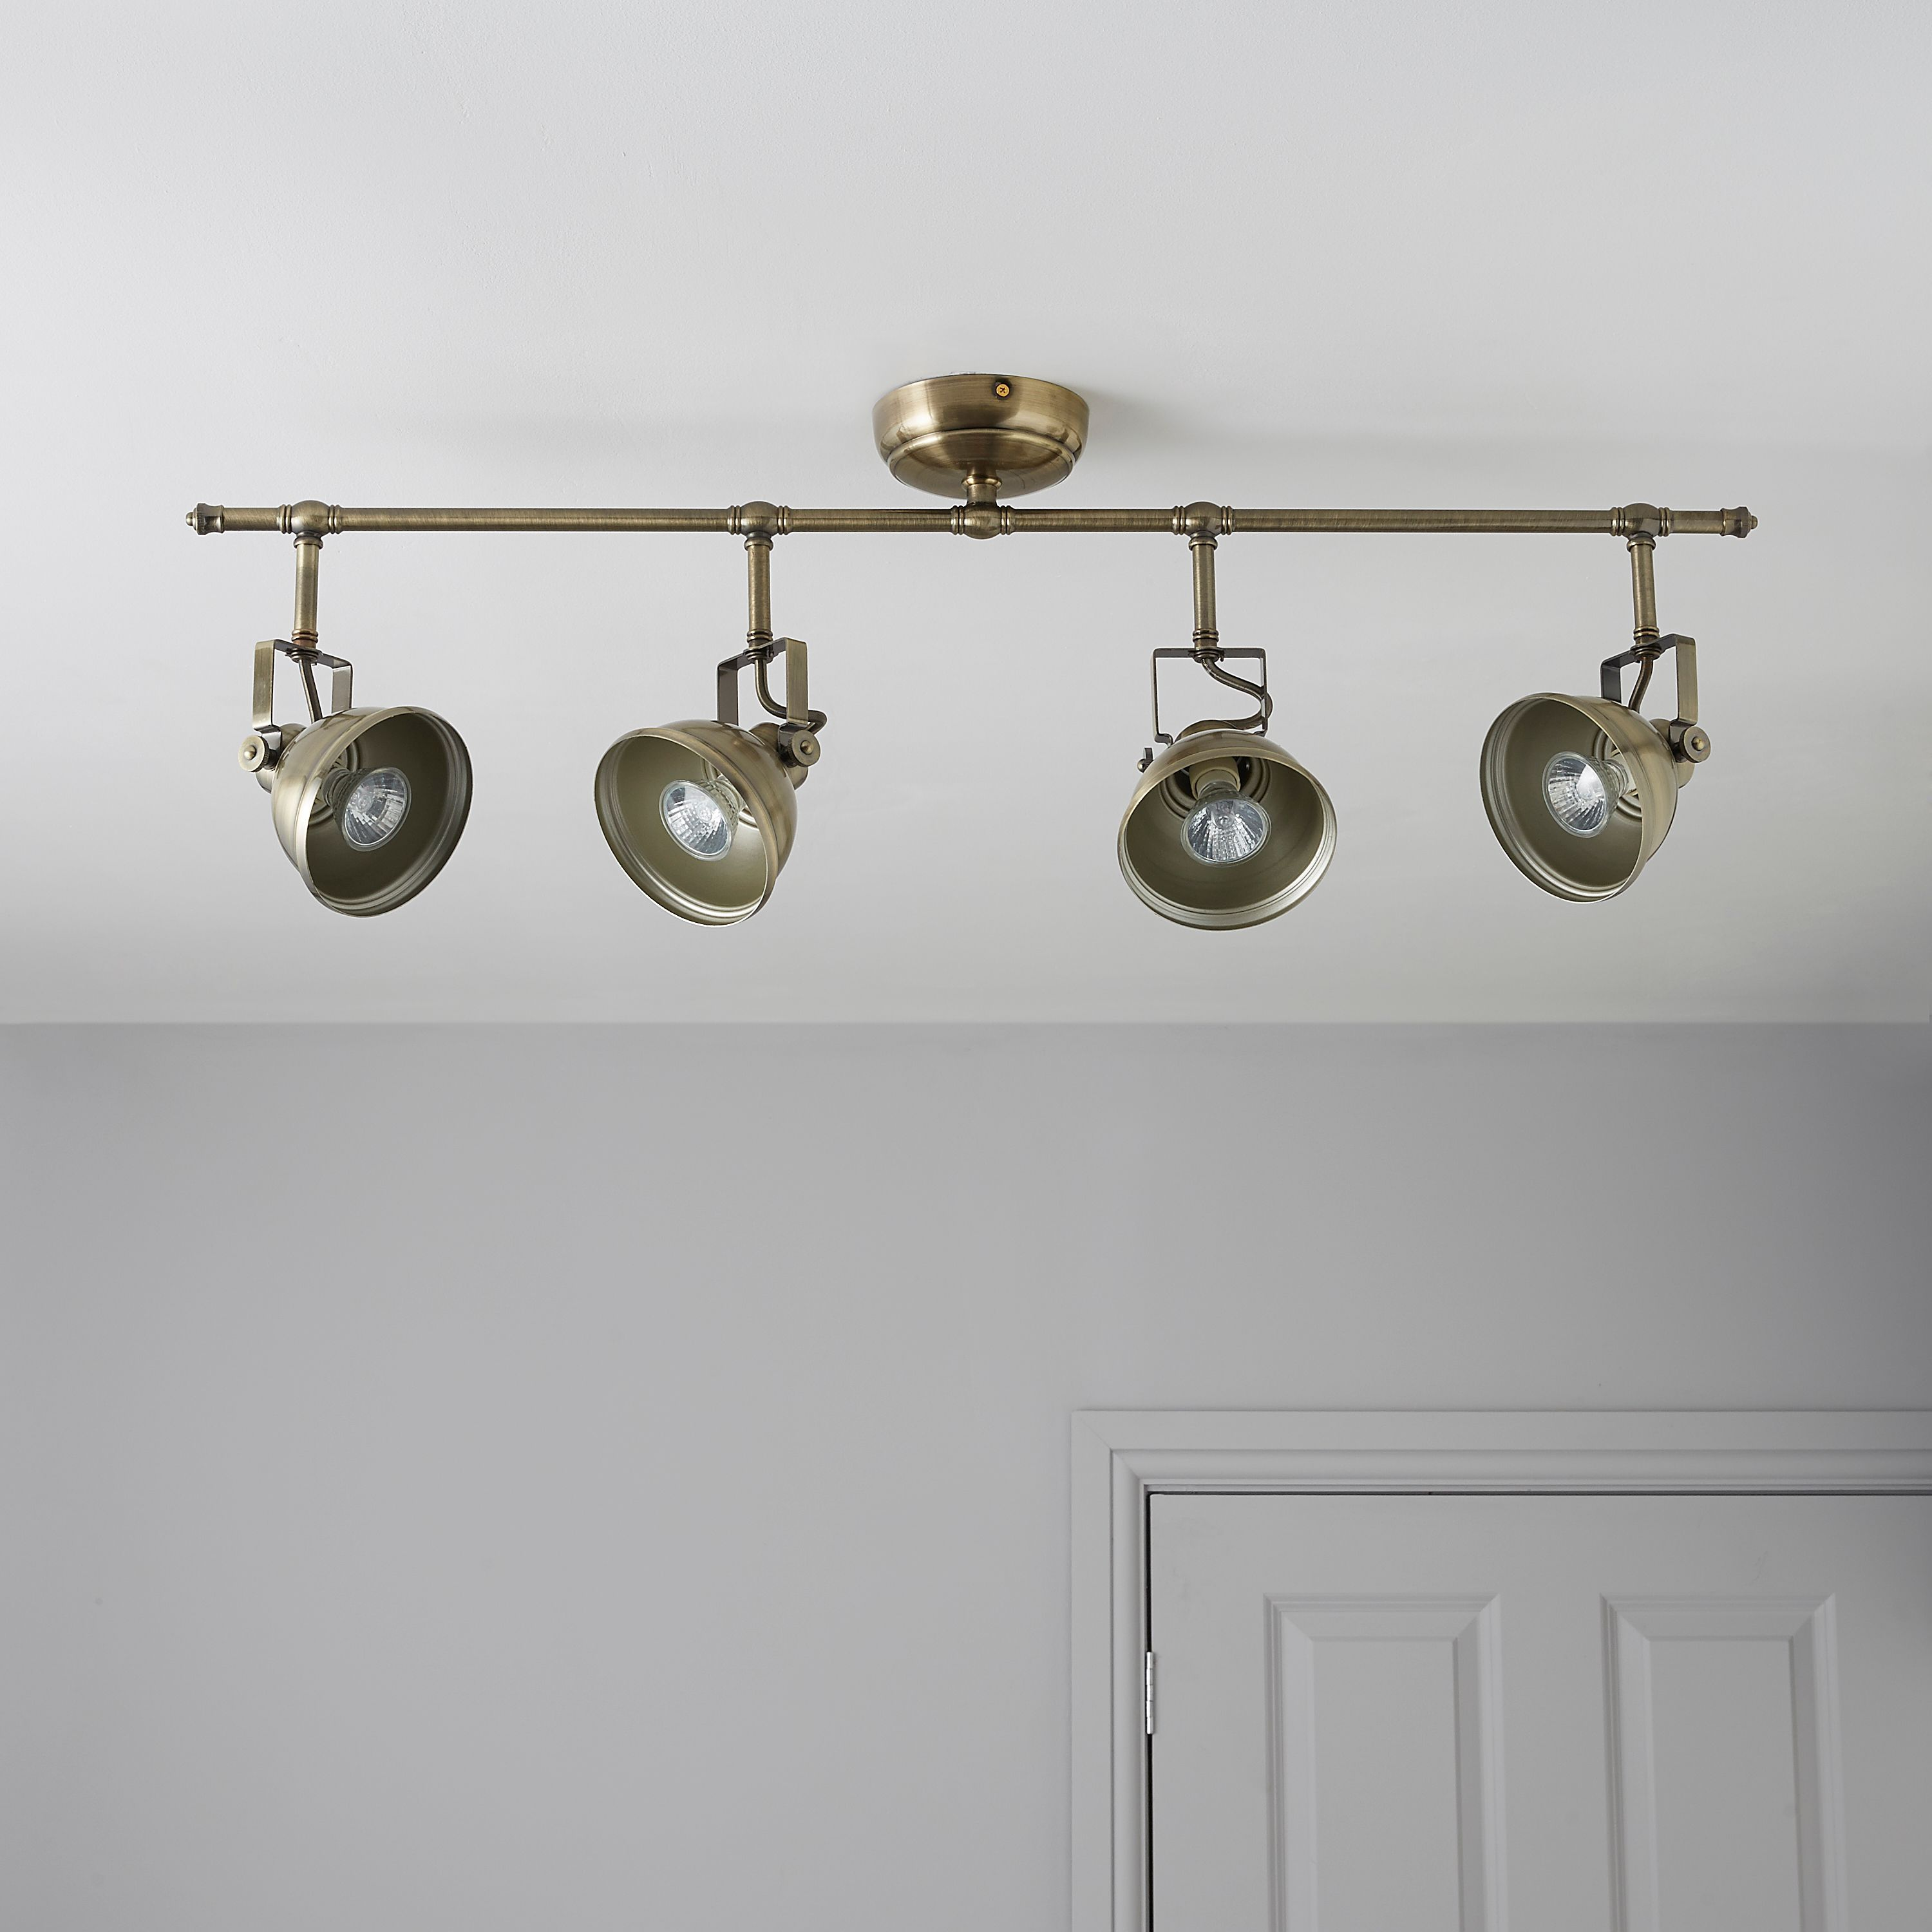 Waverley gold 4 lamp bar spotlight antique brass spotlight and bar waverley antique brass effect 4 lamp bar spotlight departments diy at bq workwithnaturefo